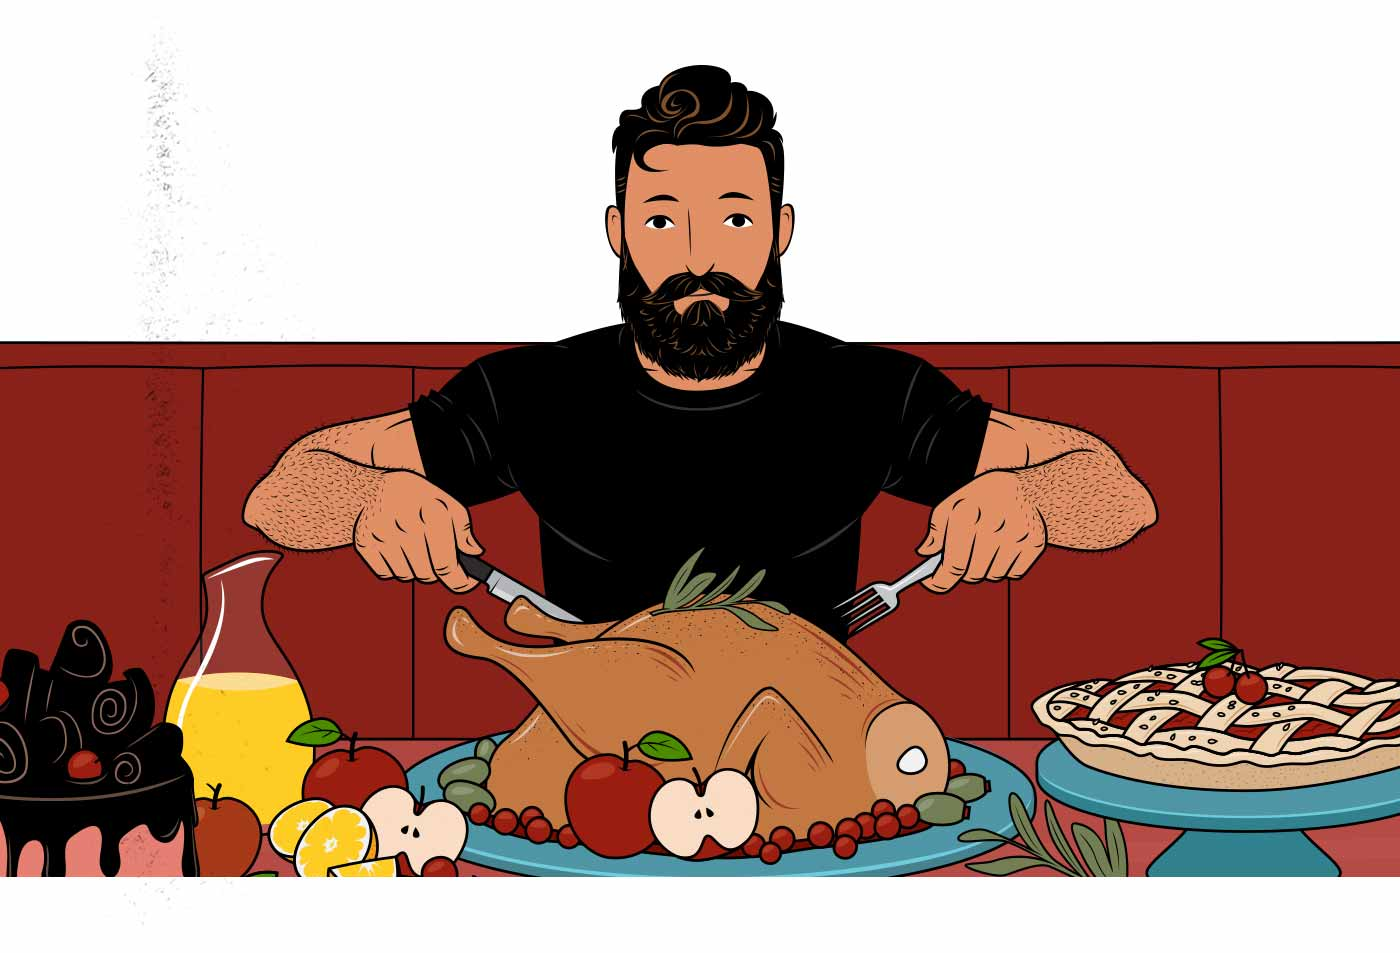 Illustration of a man eating a big bulking meal.